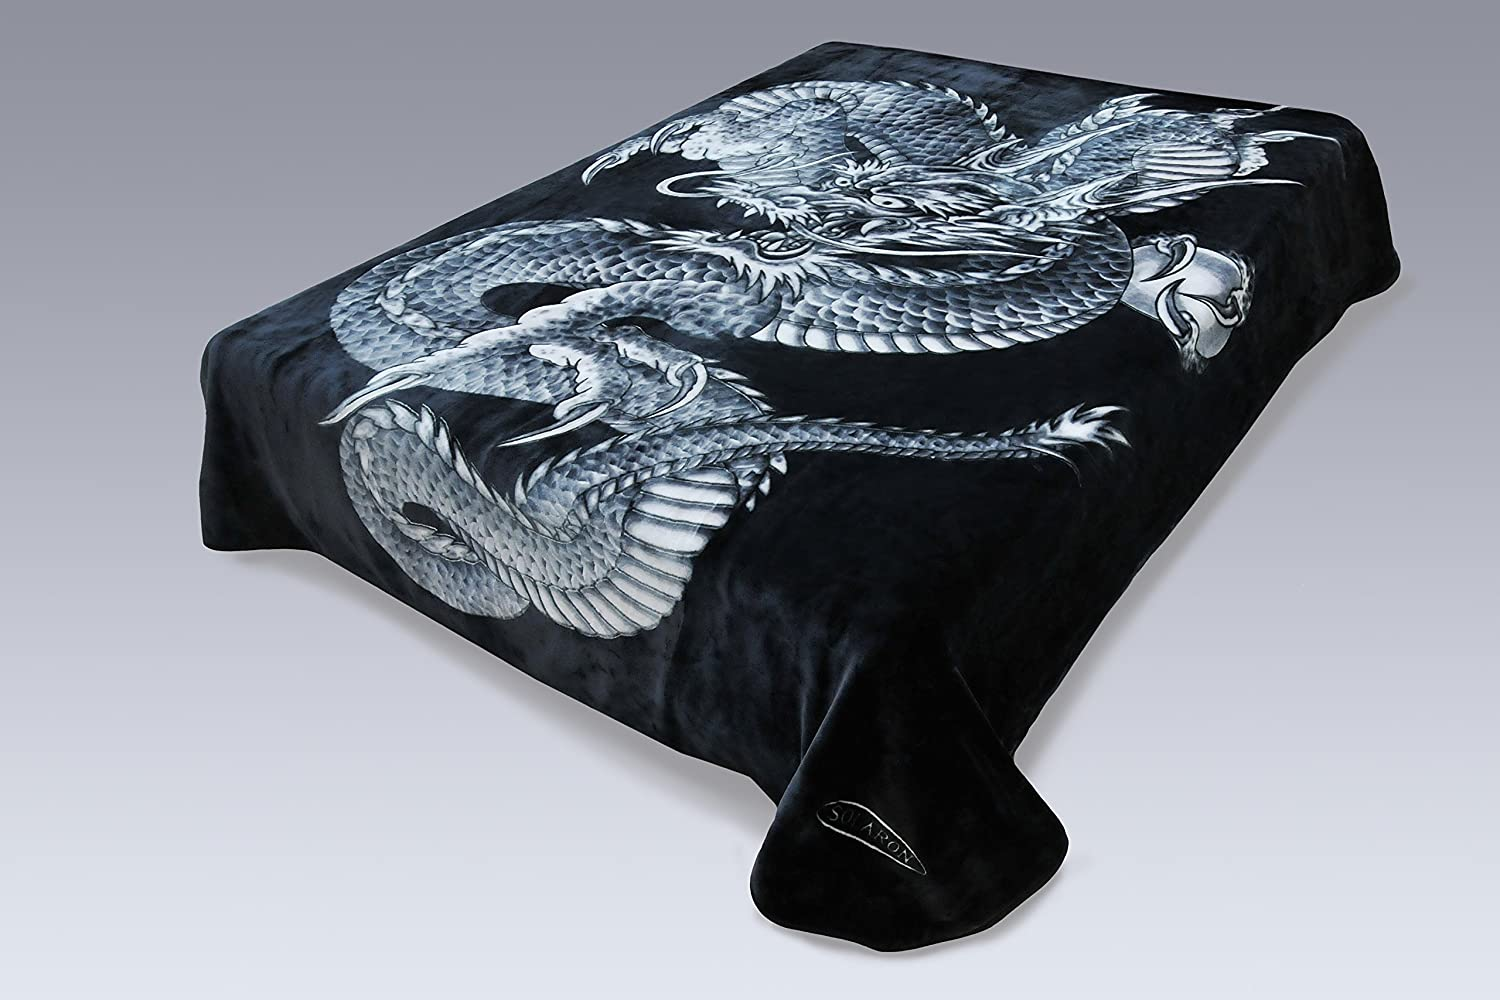 amazoncom korean solaron super high quality thick mink blanket king dragon black home u0026 kitchen - King Size Blanket